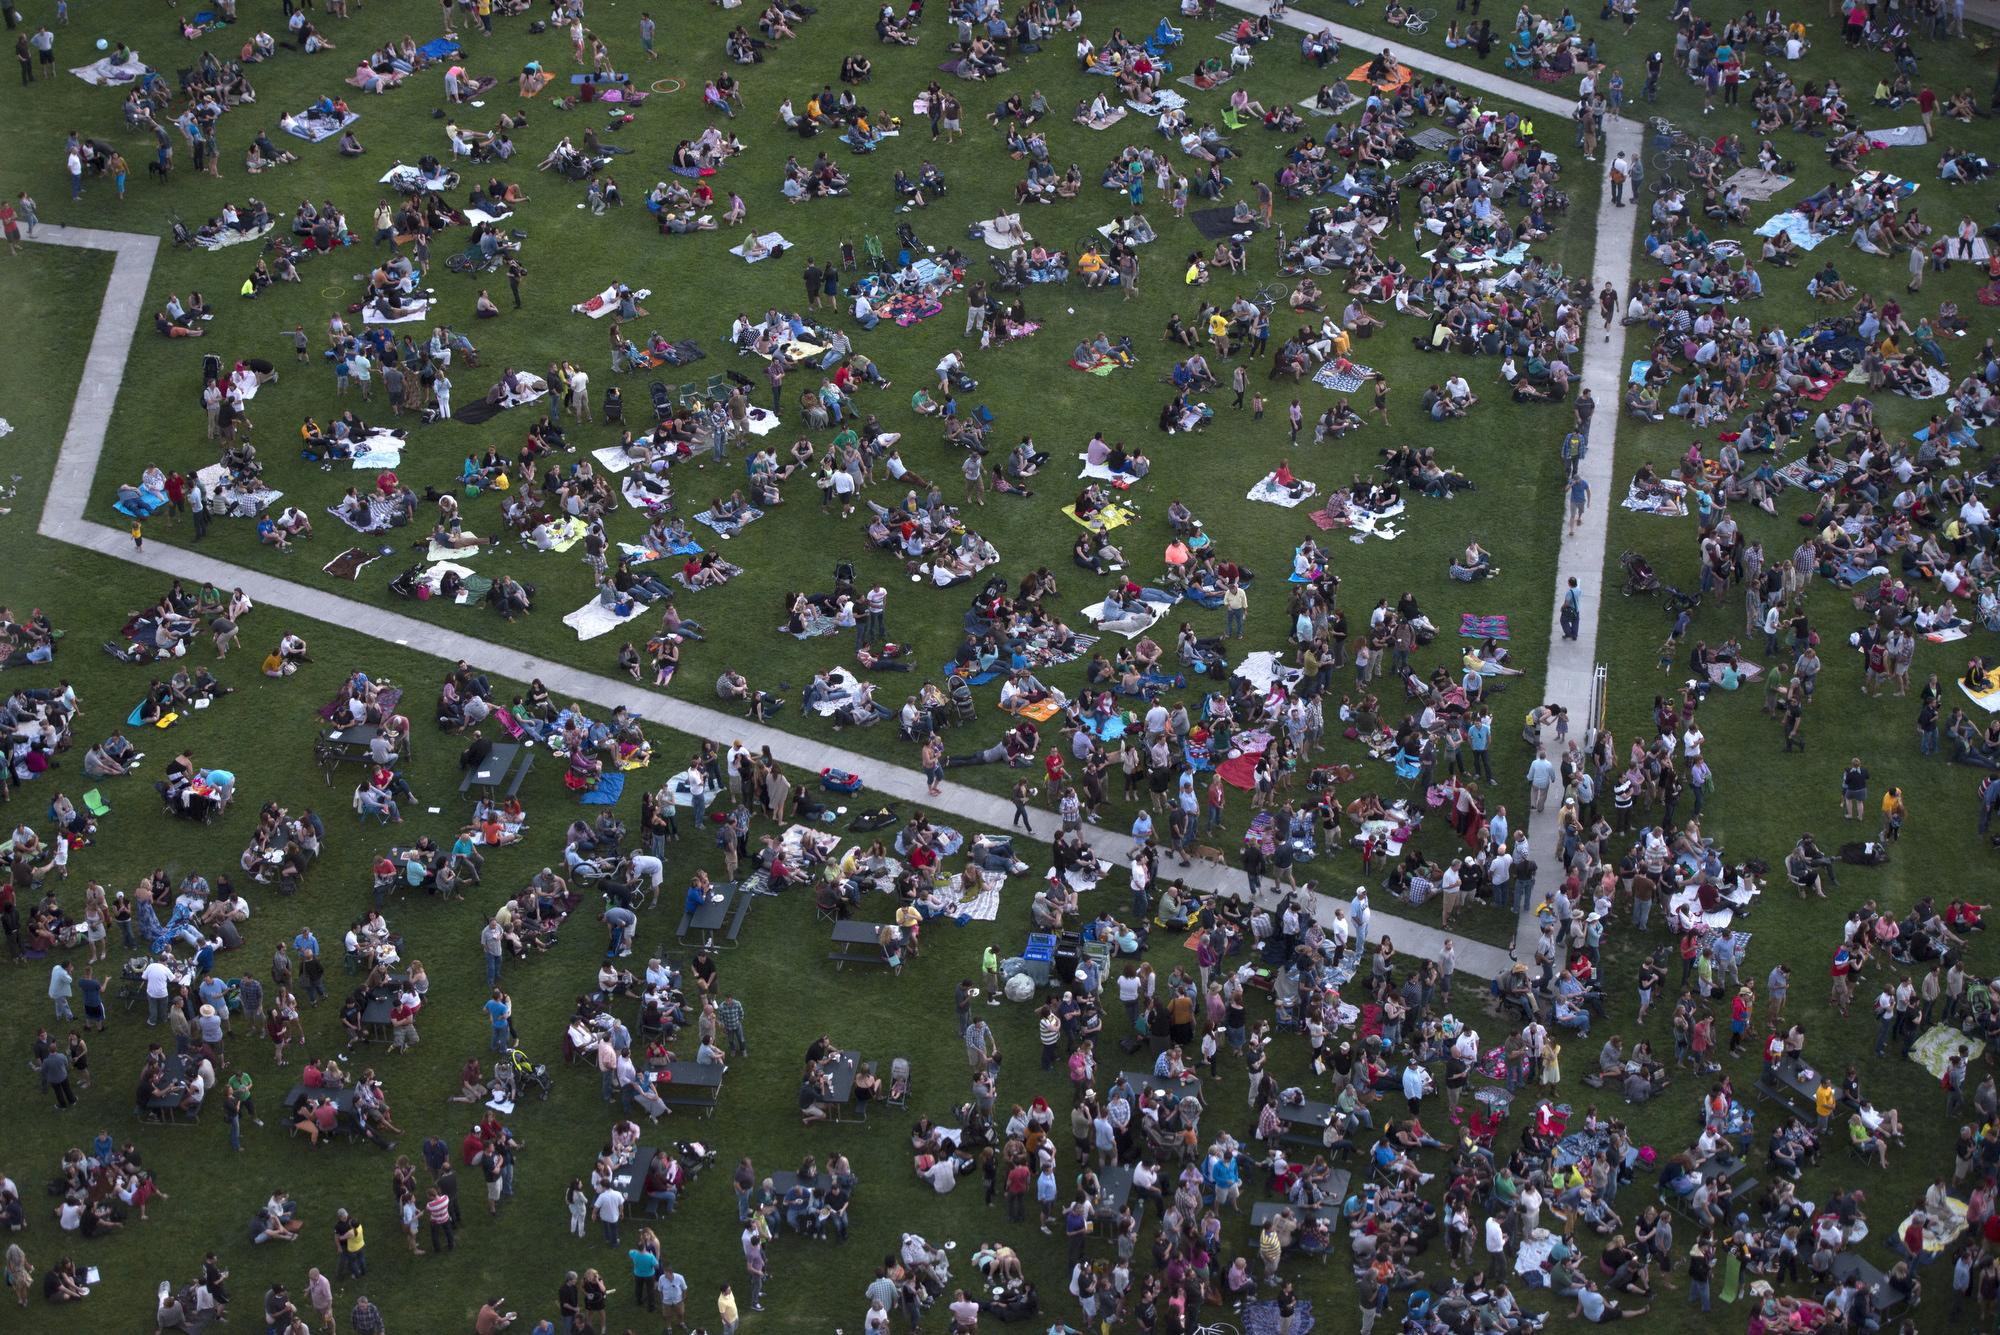 Looking down on the music bastion as Point State Park fills up with families and music fans on opening night of Three Rivers Arts Festival.